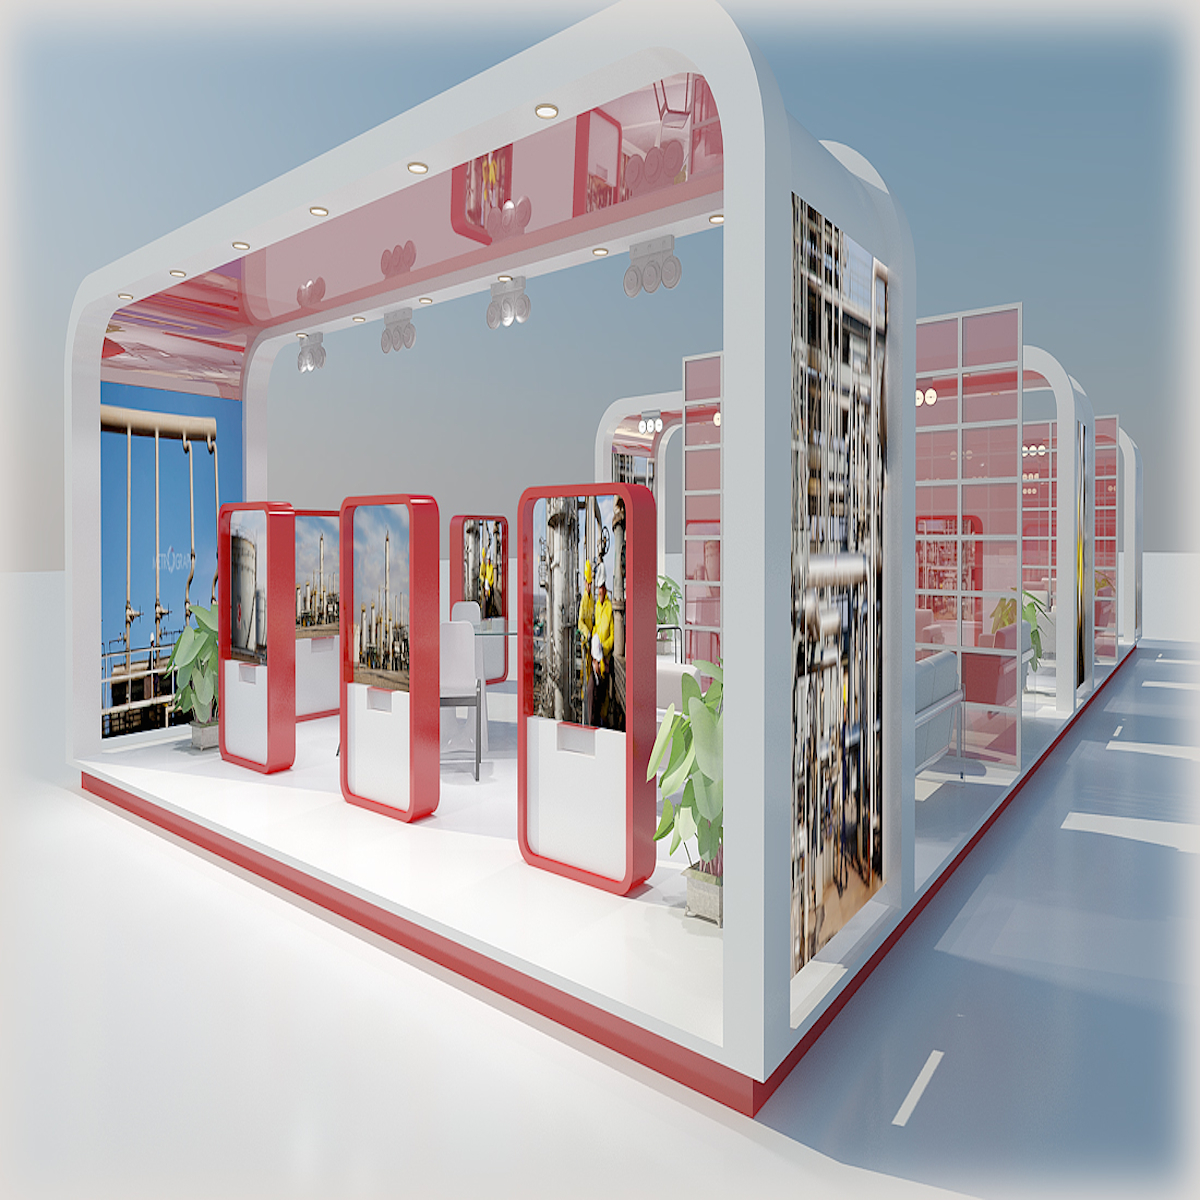 D Model Of Exhibition : Exhibition stands d model buy